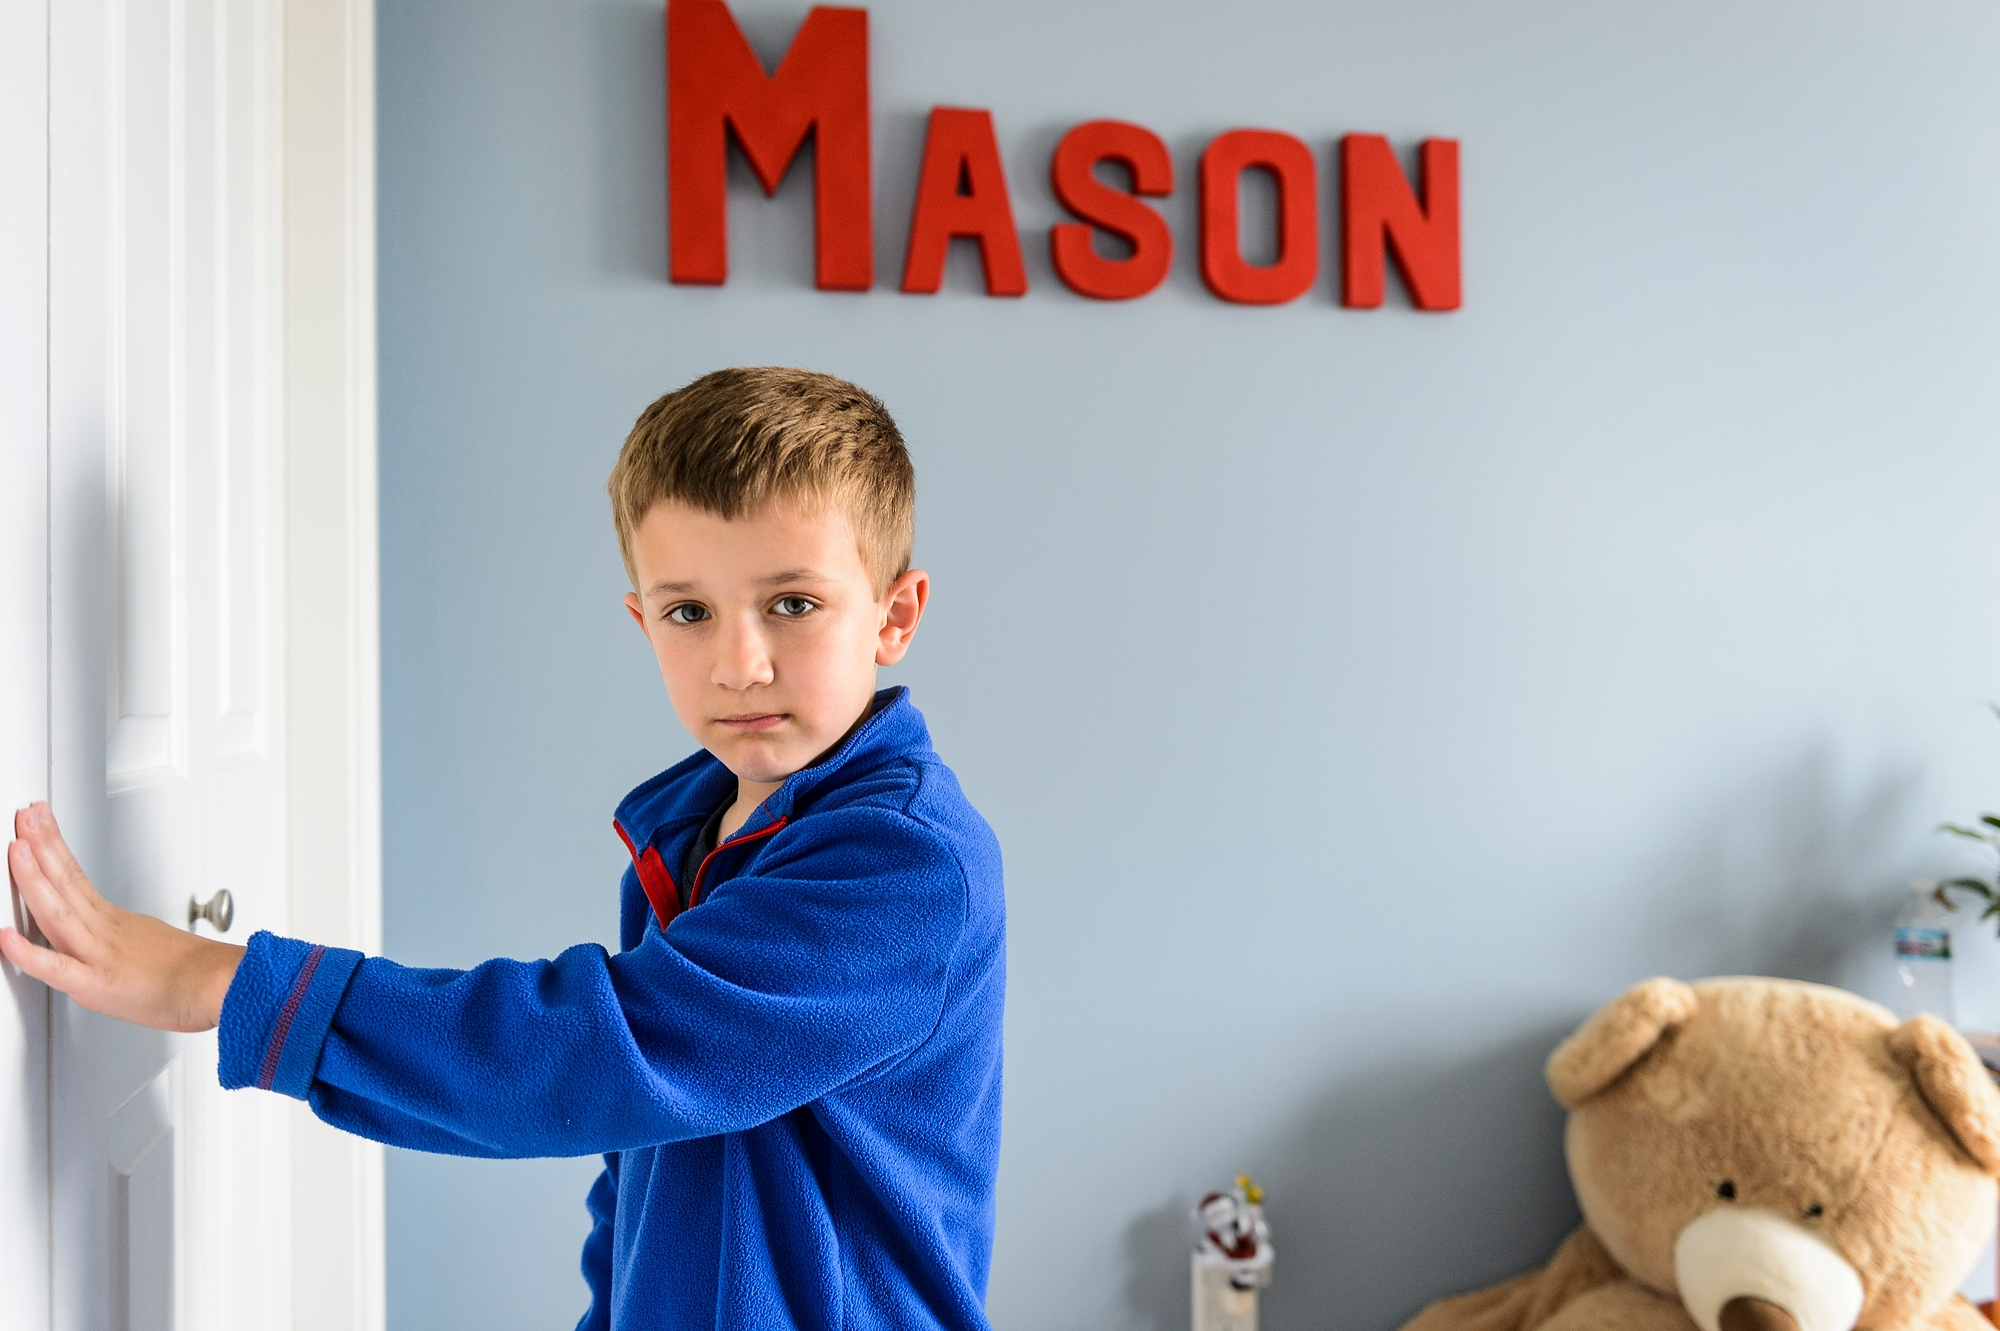 Mason Konsitzke, 7, plays in his bedroom at home in Stoughton.